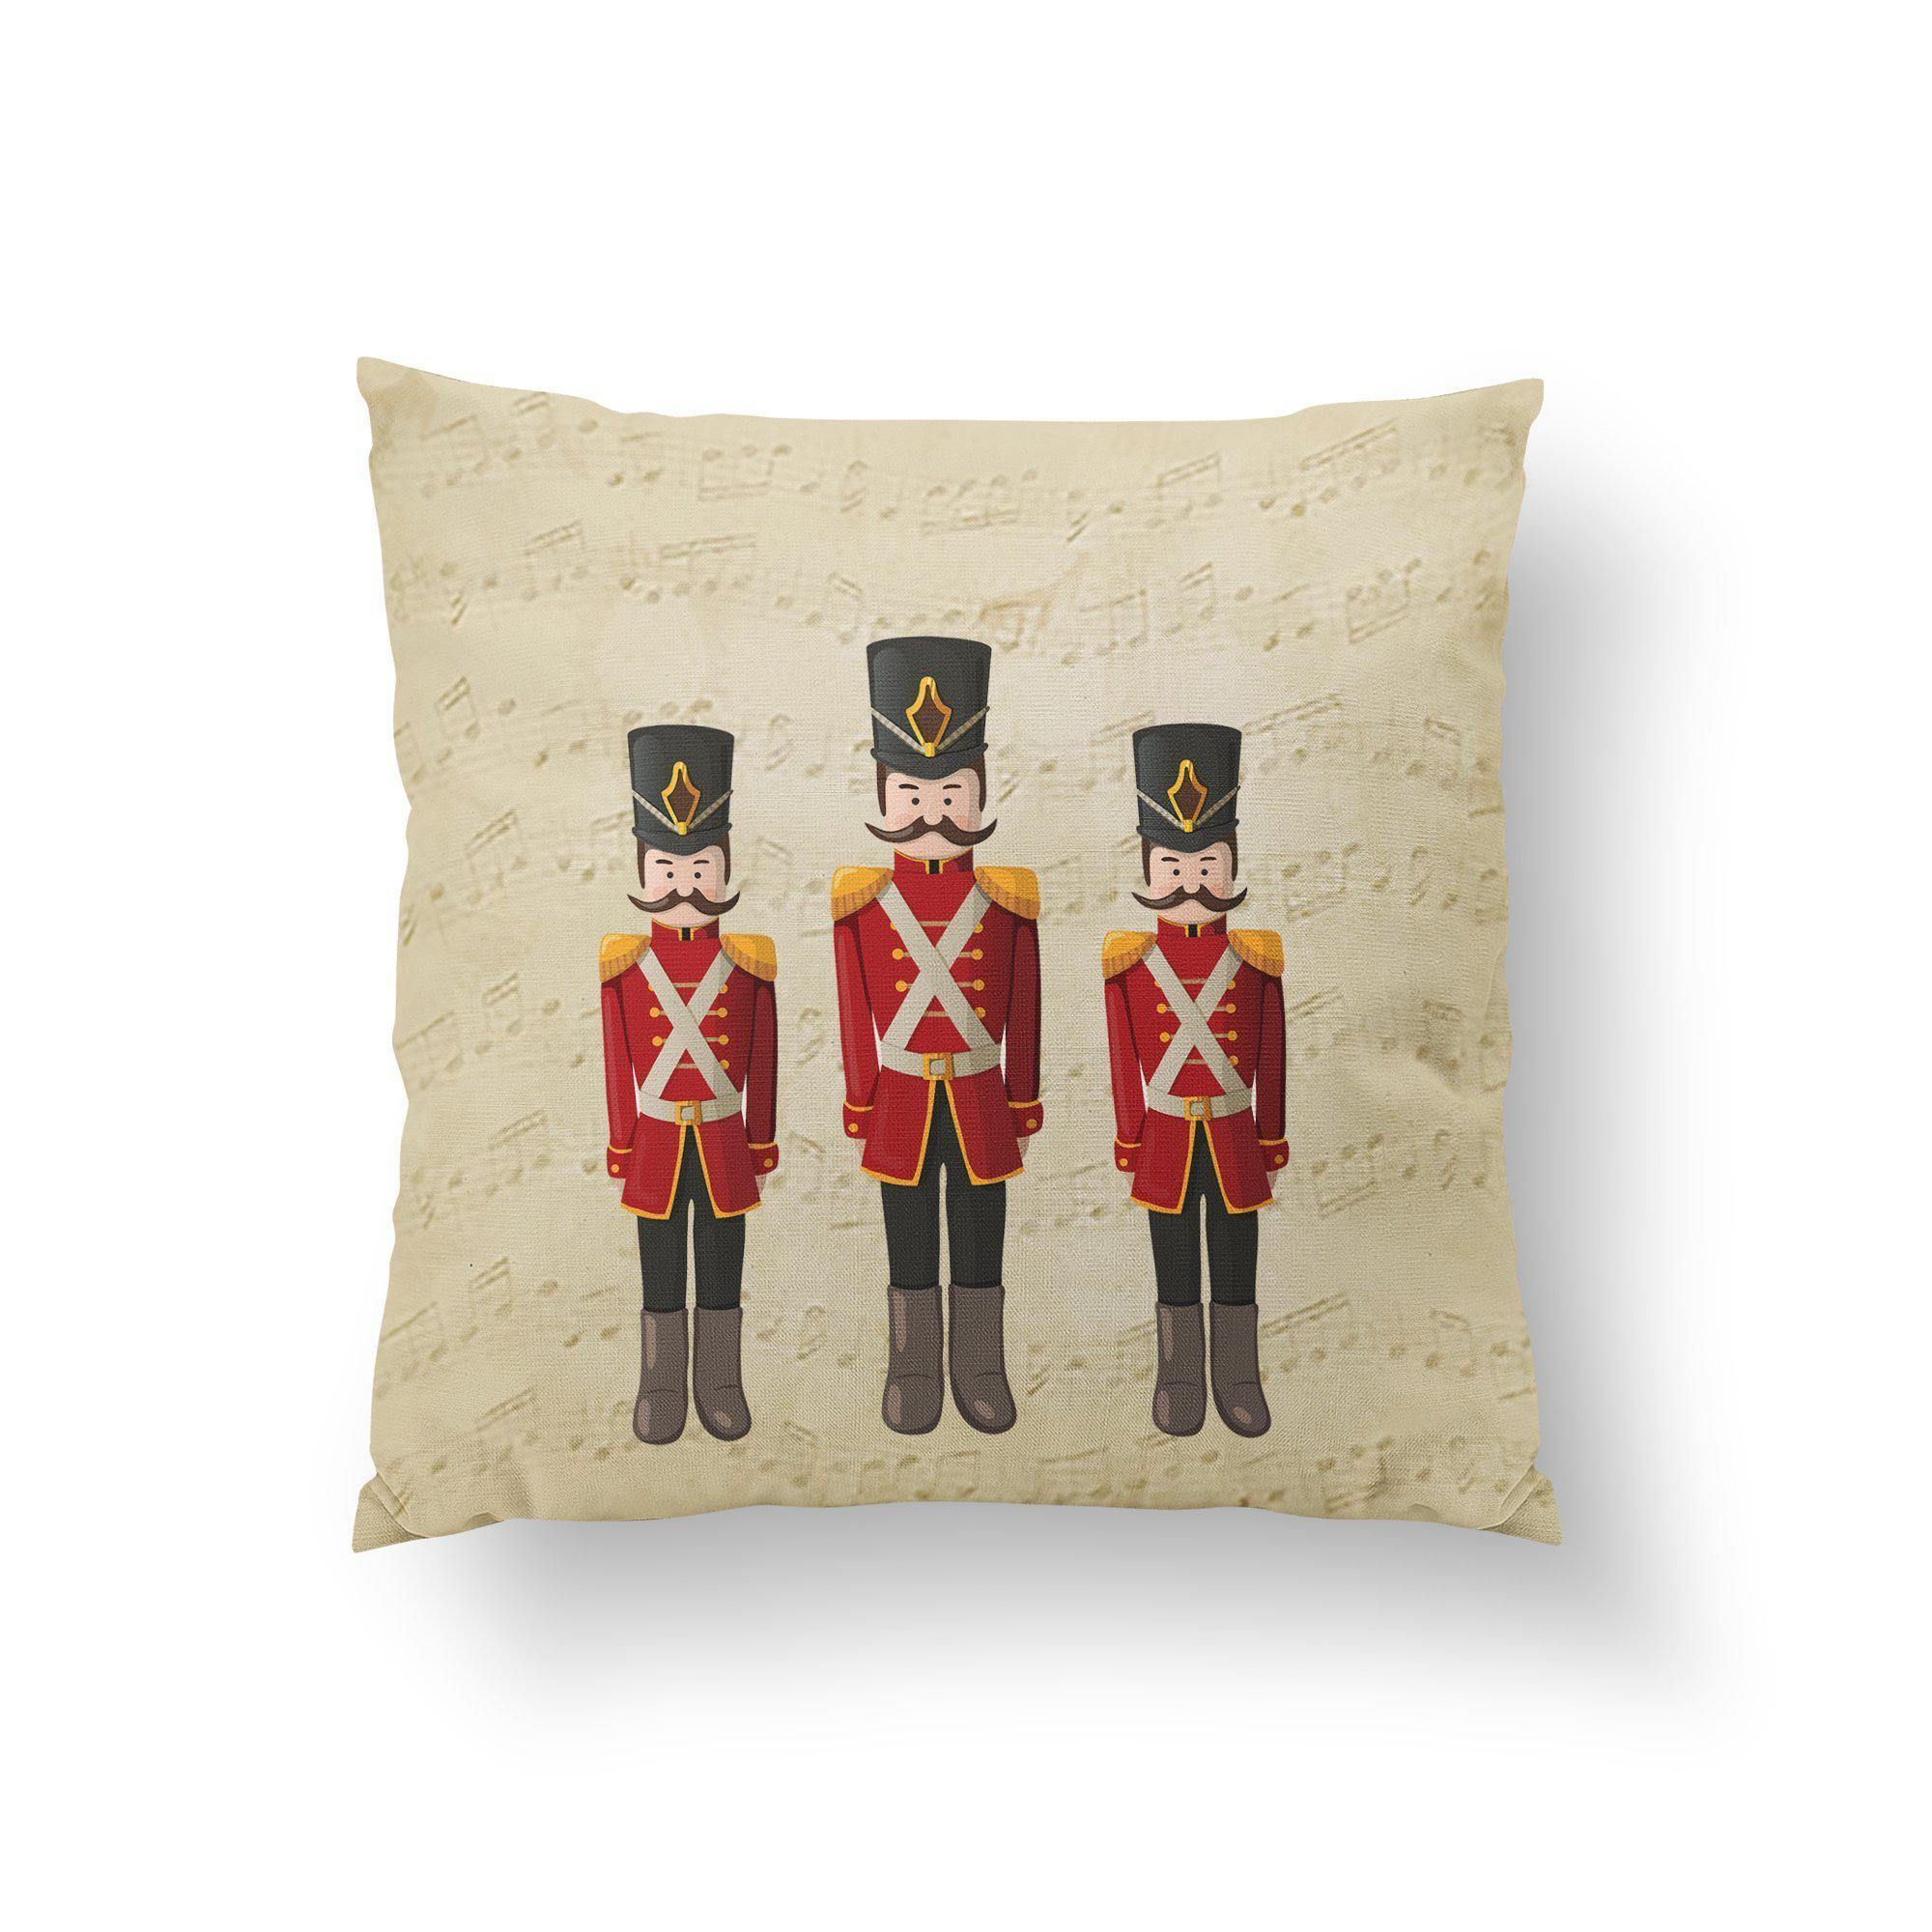 Toy Soldier Christmas Throw Pillow-W.FRANCIS